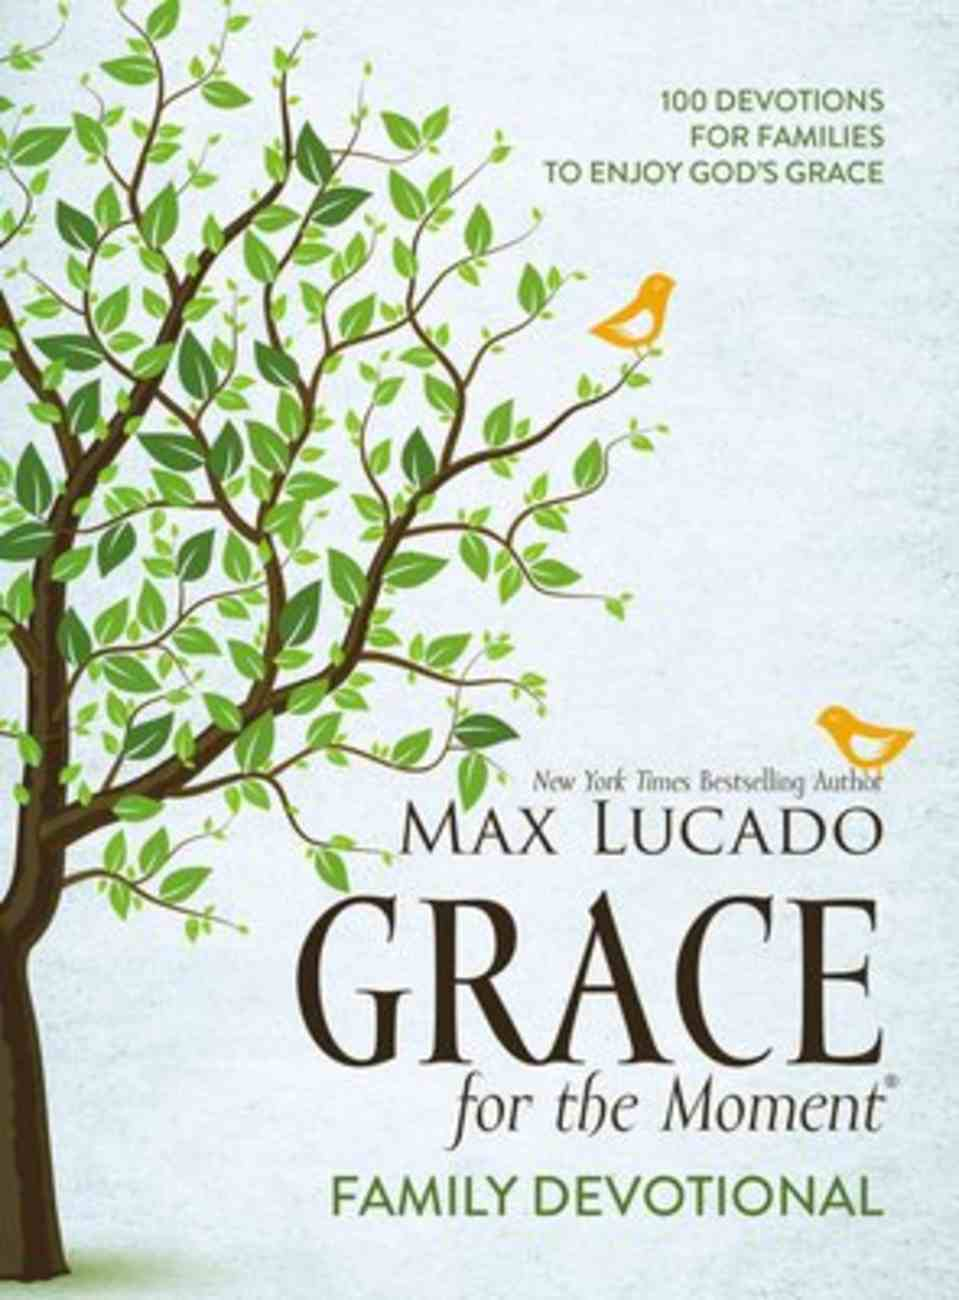 Grace For the Moment Family Devotional: 100 Devotions For Families to Enjoy God's Grace Hardback